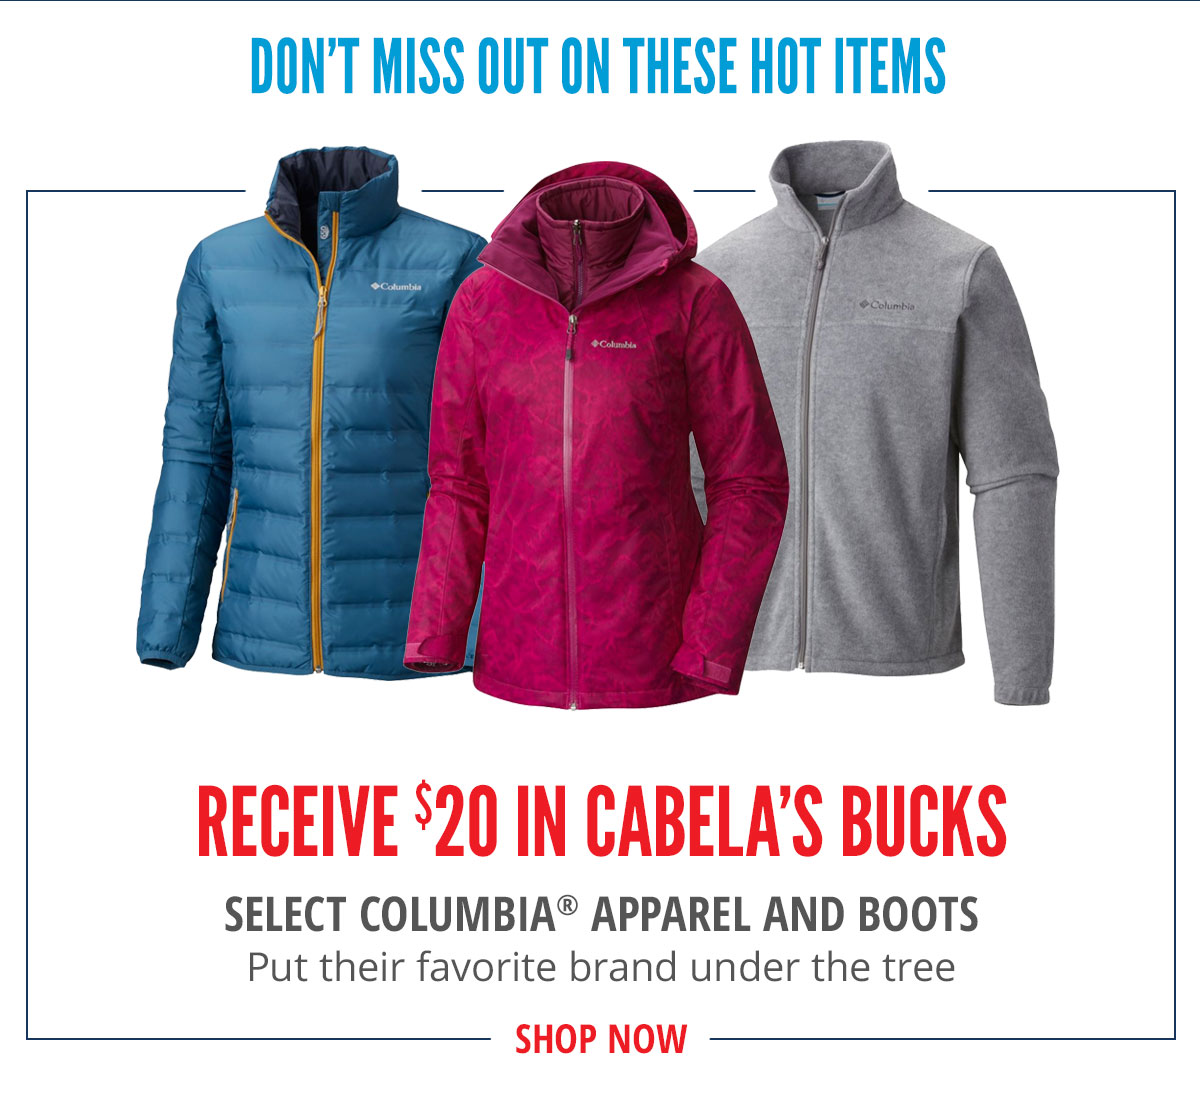 Receive $20 in Cabela's Bucks SELECT COLUMBIA APPAREL AND BOOTS